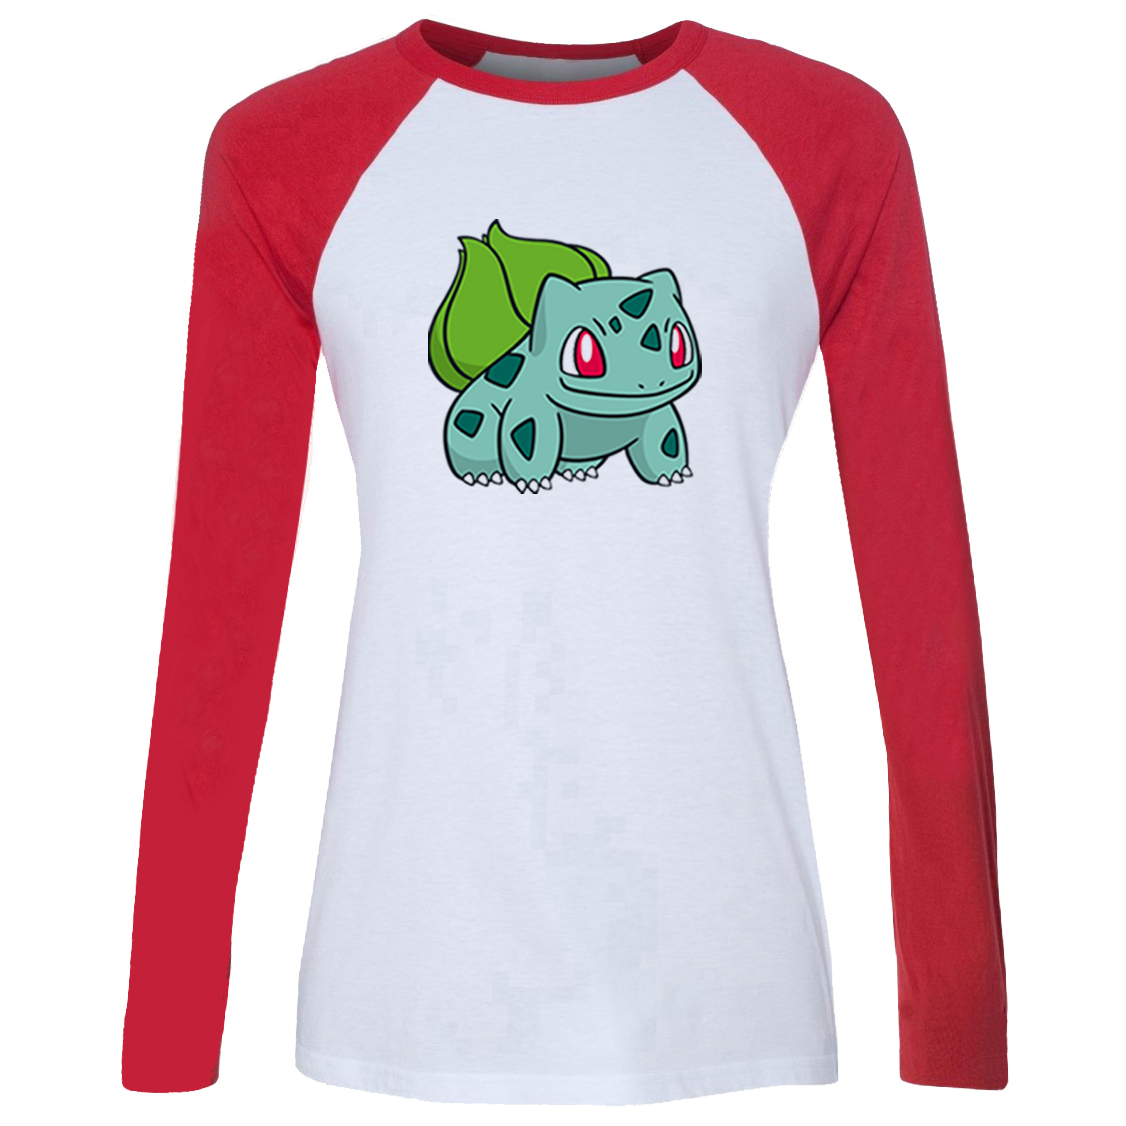 iDzn Women's Casual T-shirt Pokemon Grass Poison Type Bulbasaur Ivysaur Venusaur Pattern Long Sleeve Girls T shirt Lady Tee Tops image